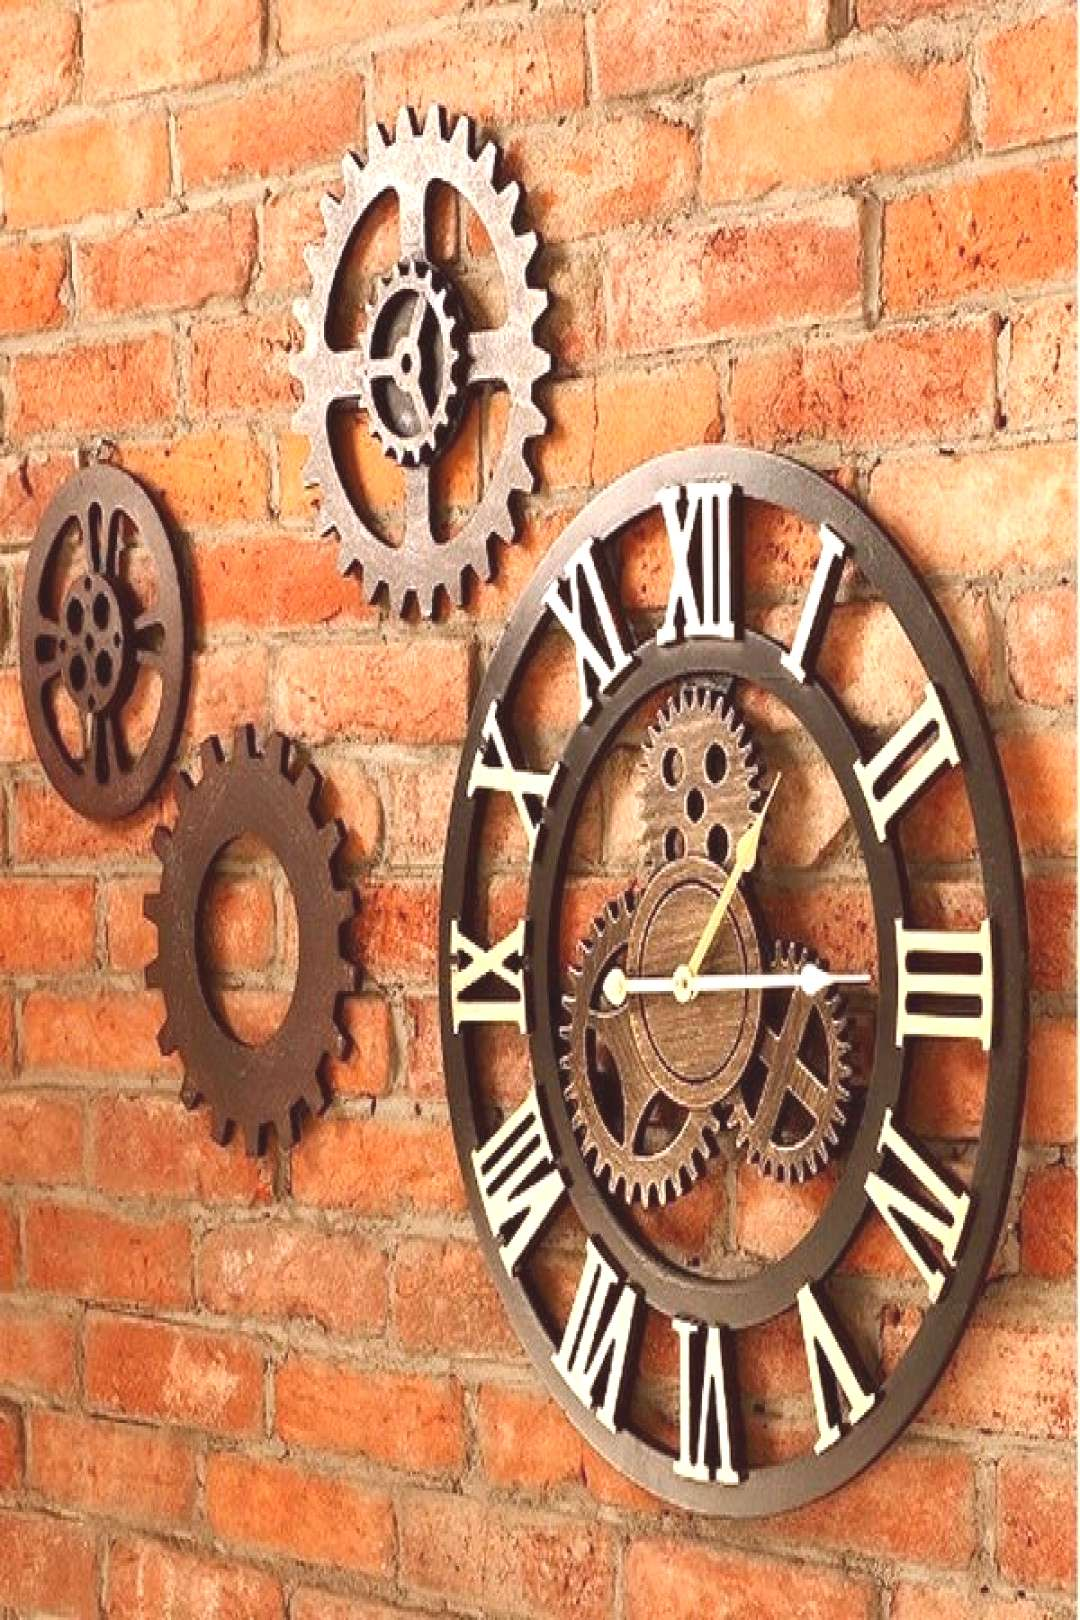 Vintage Clock European Retro Vintage Handmade 3D Decorative Gear Wooden Vintage Wall Clock, 19.6-In